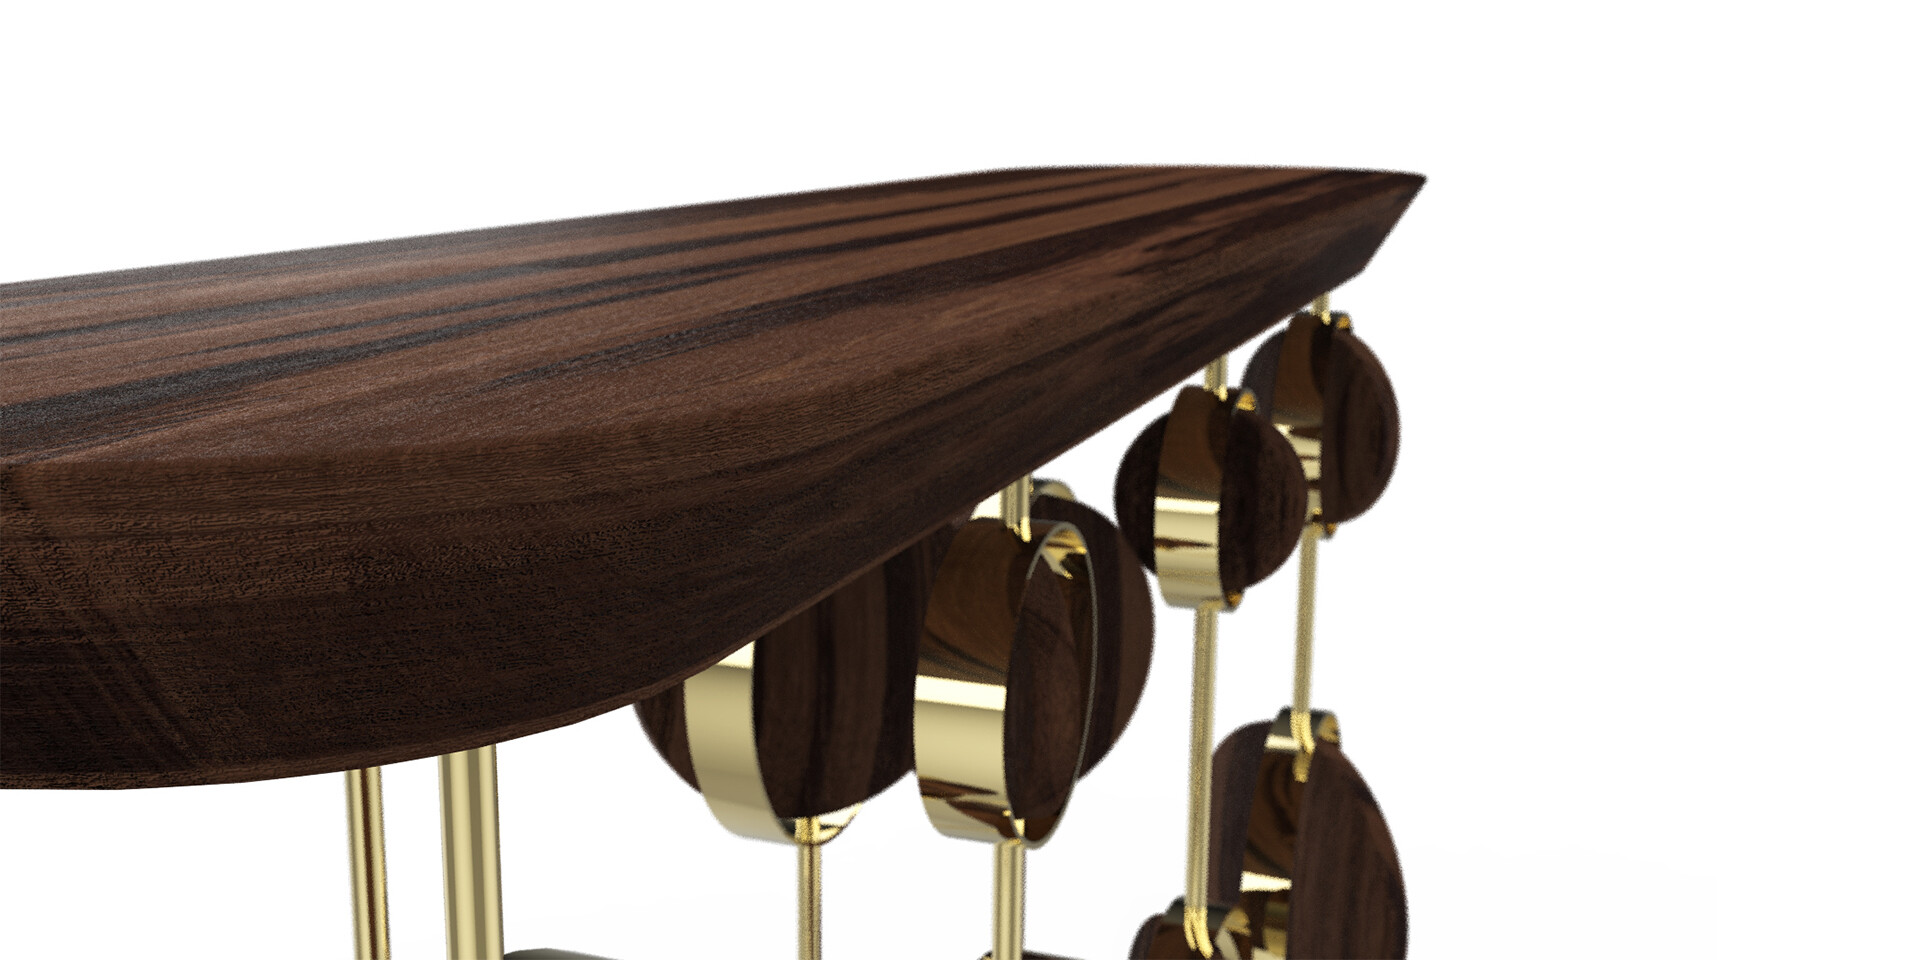 FAIRY CIRCLE CONSOLE detail top side view ALMA de LUCE